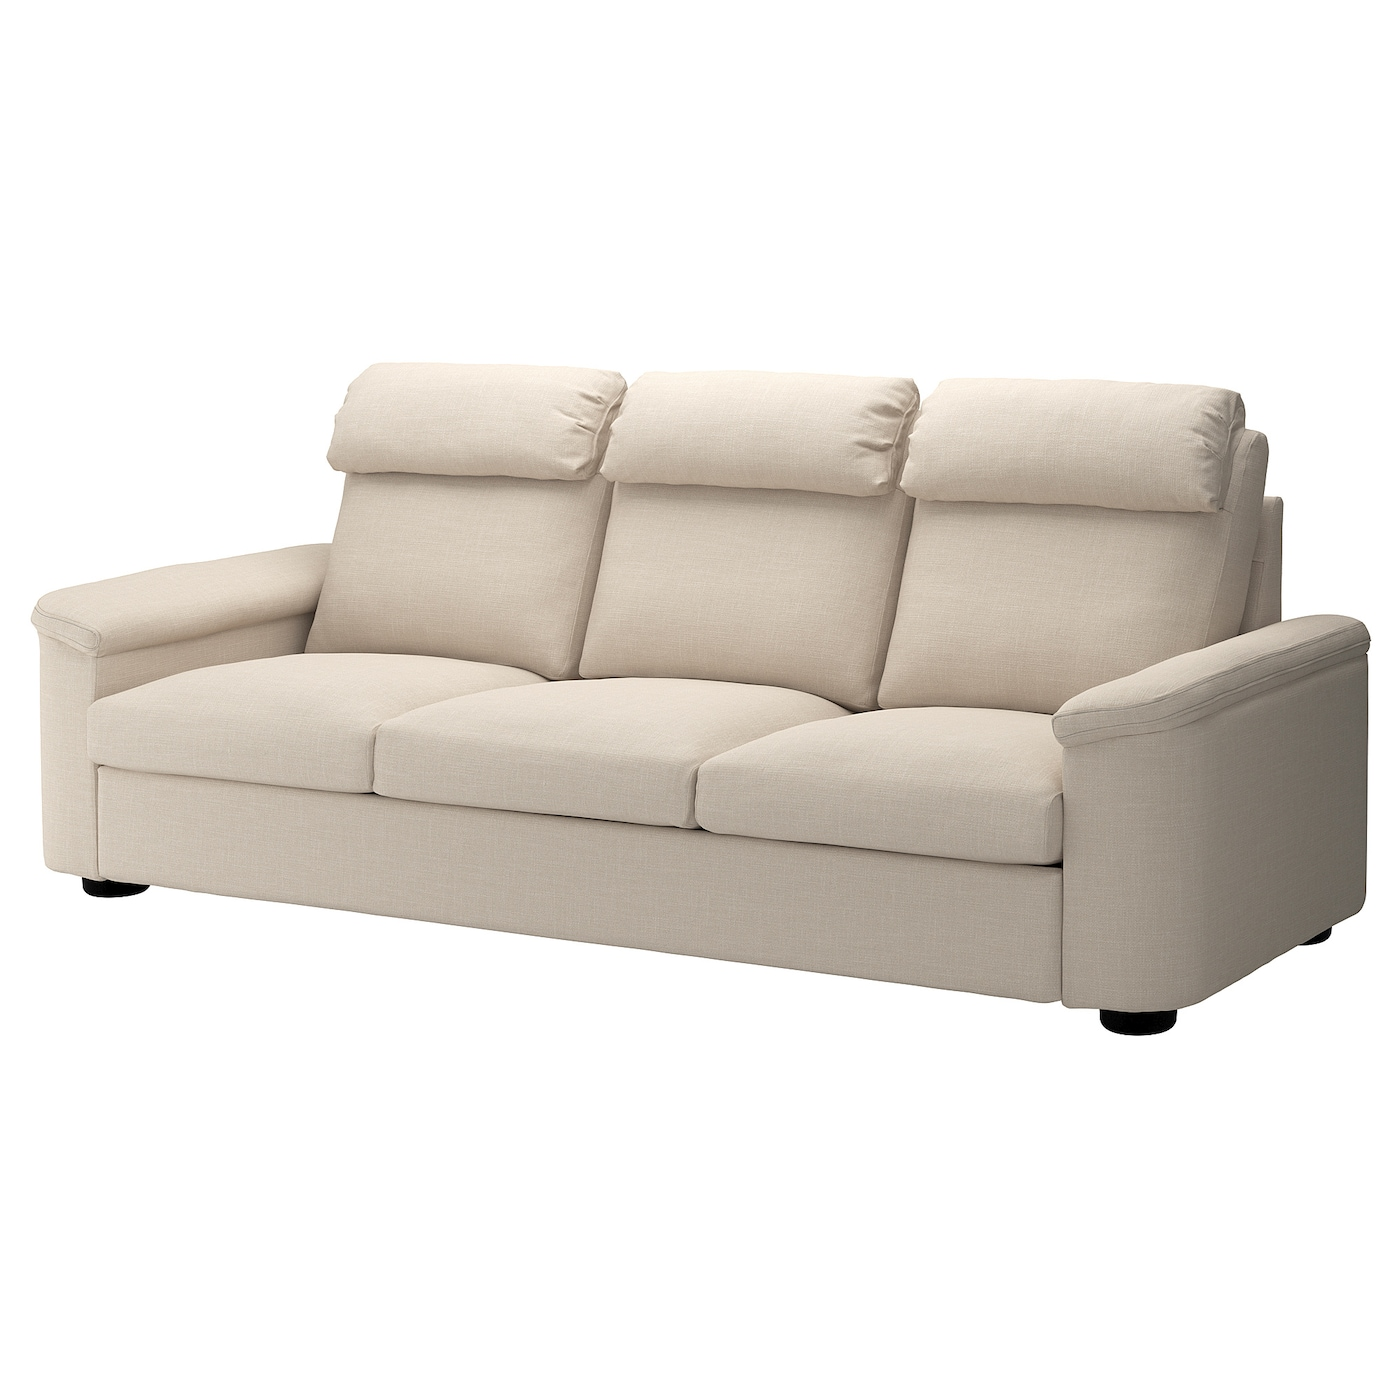 IKEA LIDHULT 3-seat sofa The cover is easy to keep clean since it is removable and machine washable.